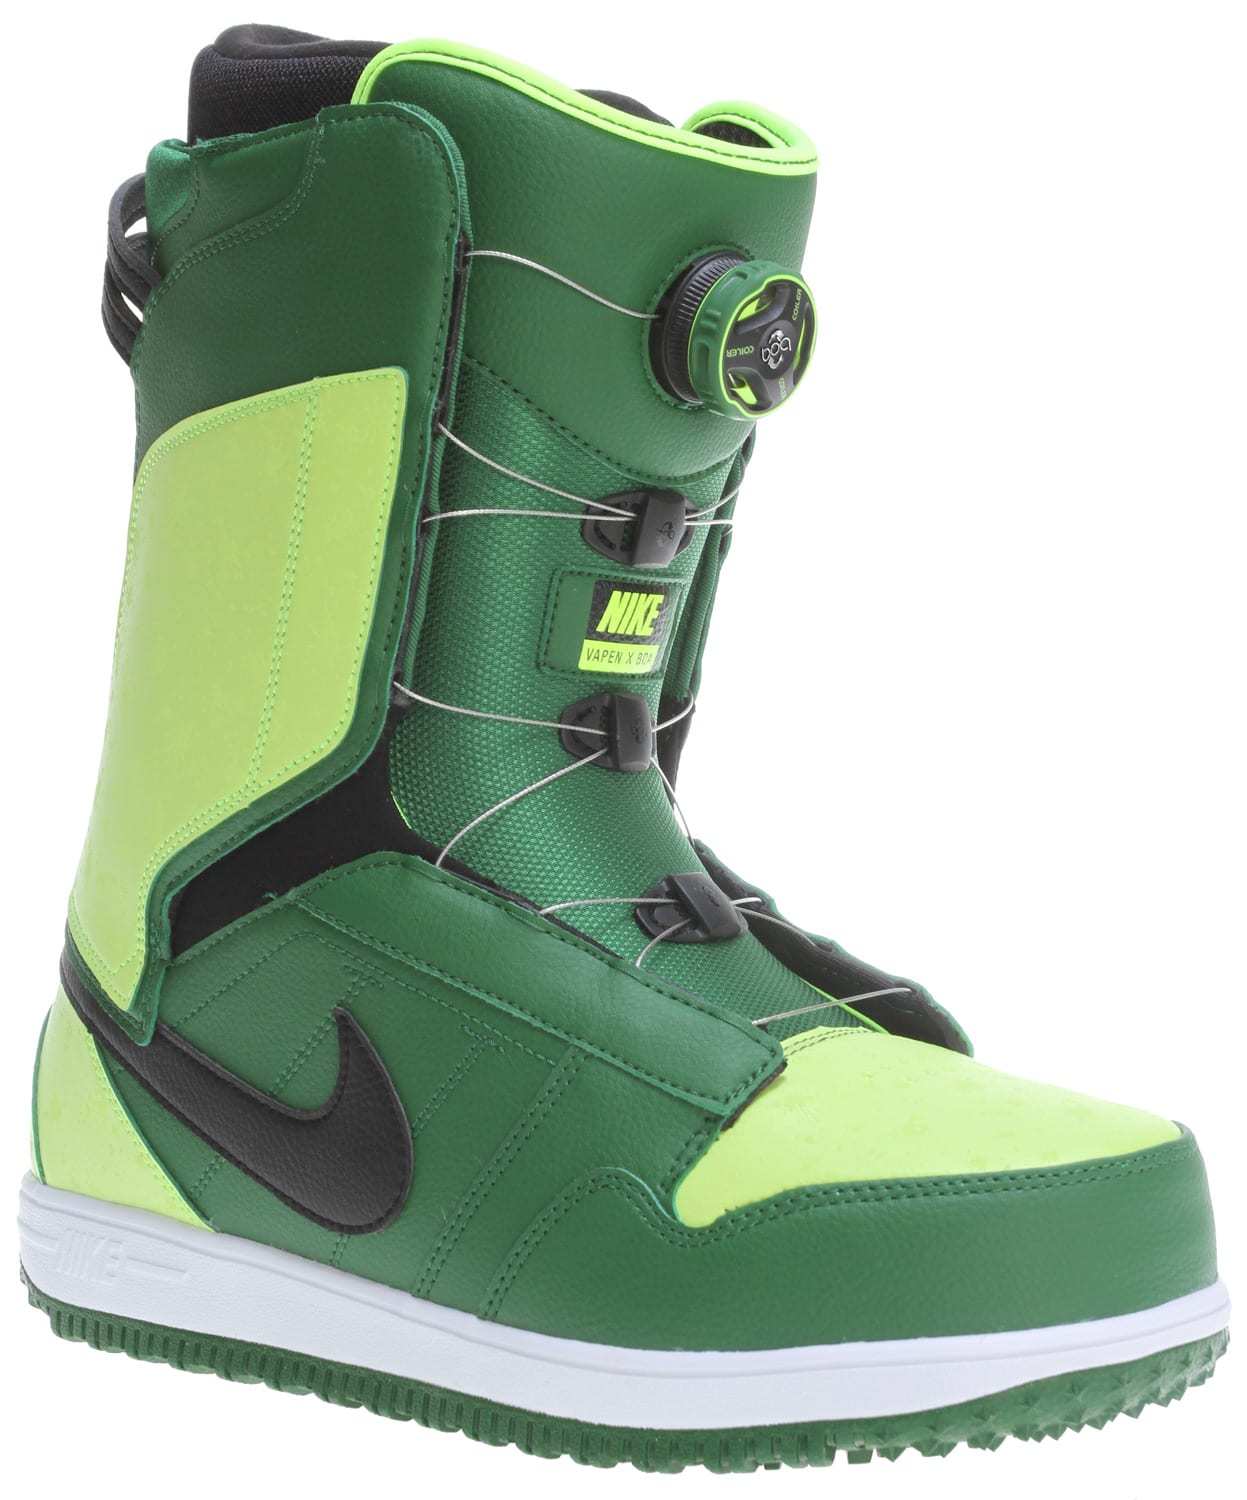 nike vapen x boa snowboard boots. Black Bedroom Furniture Sets. Home Design Ideas